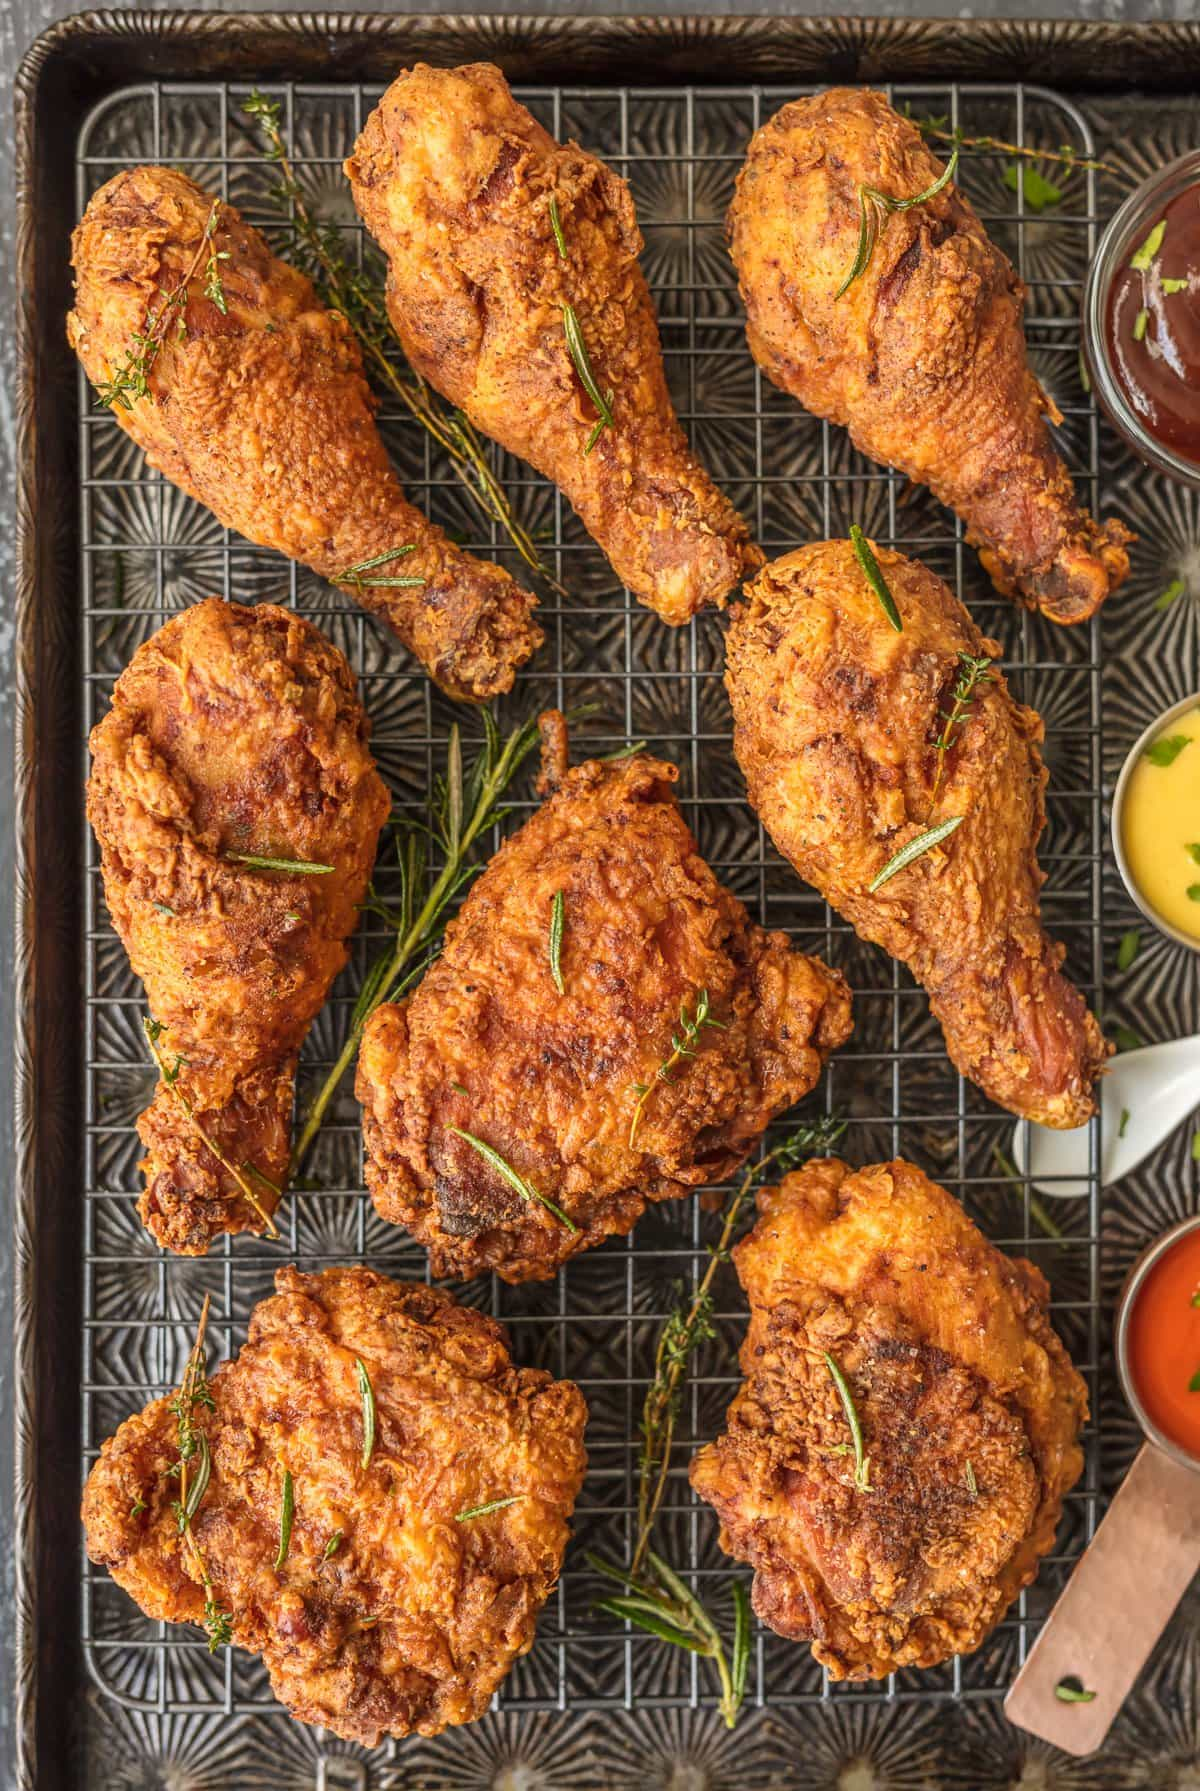 This BEST EVER BUTTERMILK FRIED CHICKEN will become the favorite chicken of your life! Anyone can master this AMAZING technique for the most tender juicy chicken with a crunchy savory outer skin. SO GOOD.